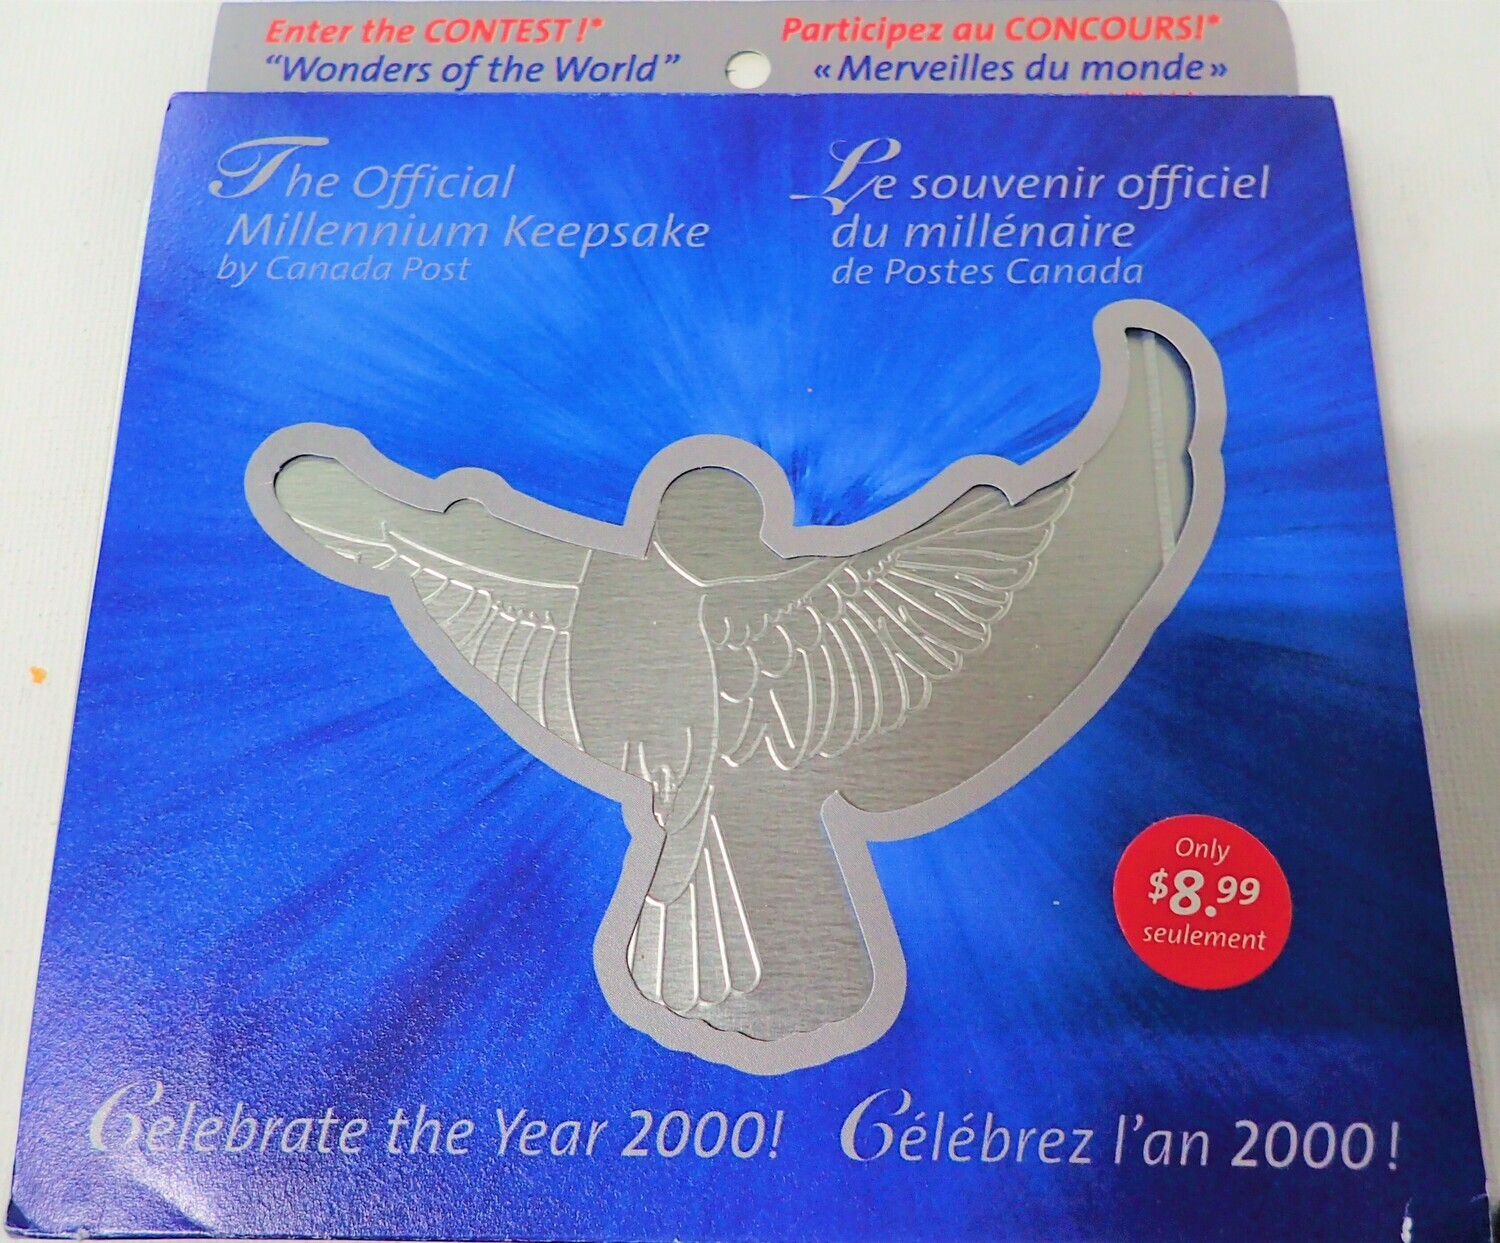 2000 OFFICIAL MILLENNIUM KEEPSAKE BY CANADA POST OFFICE